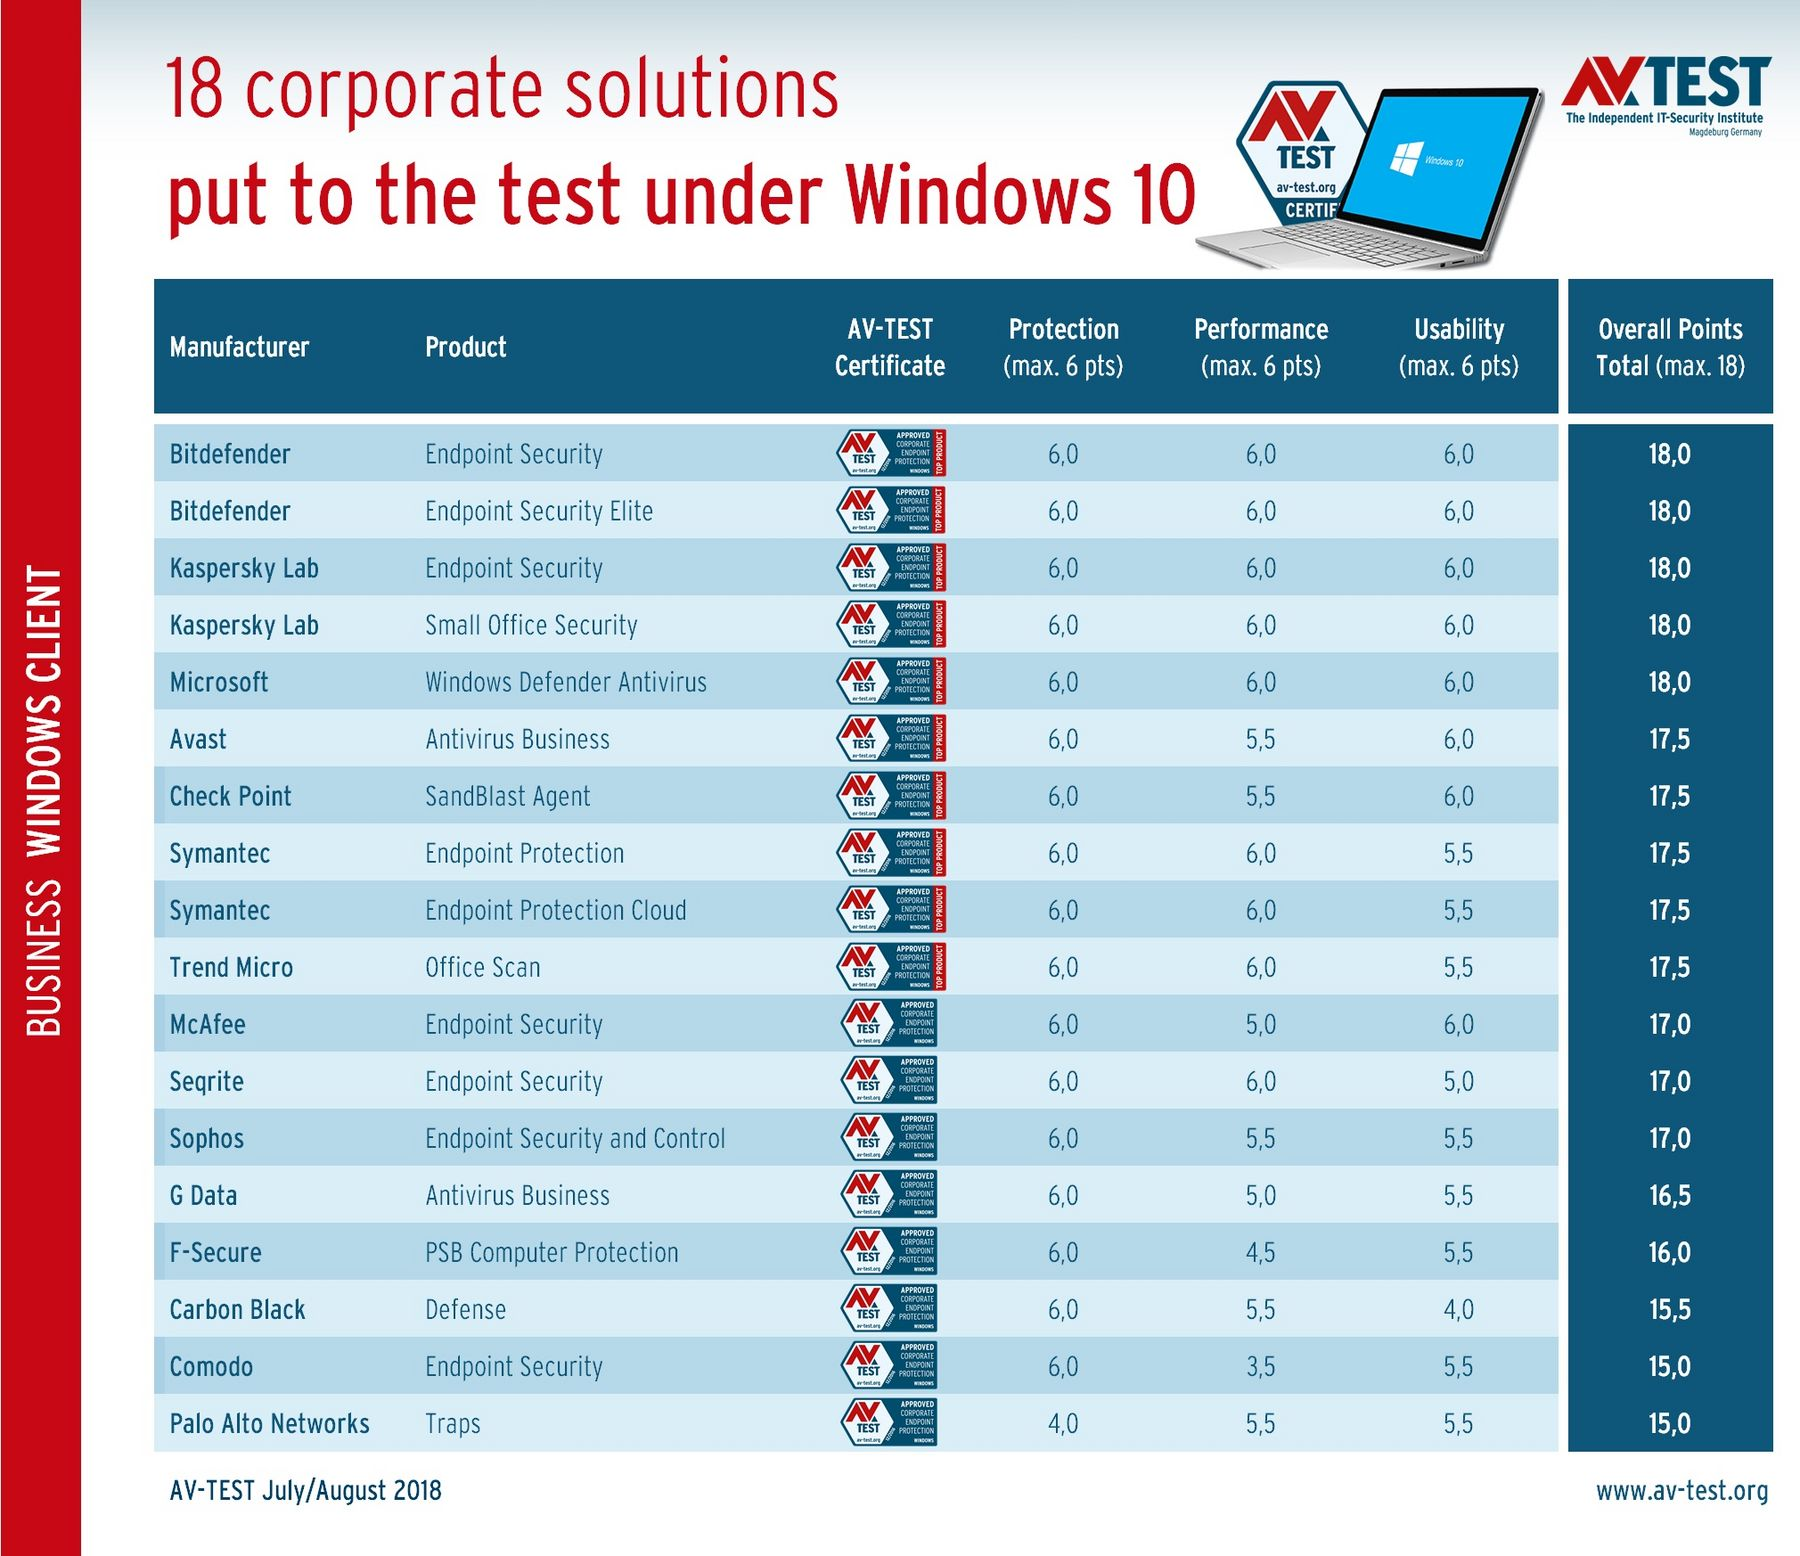 18 Corporate Protection Solutions Put to the Test under